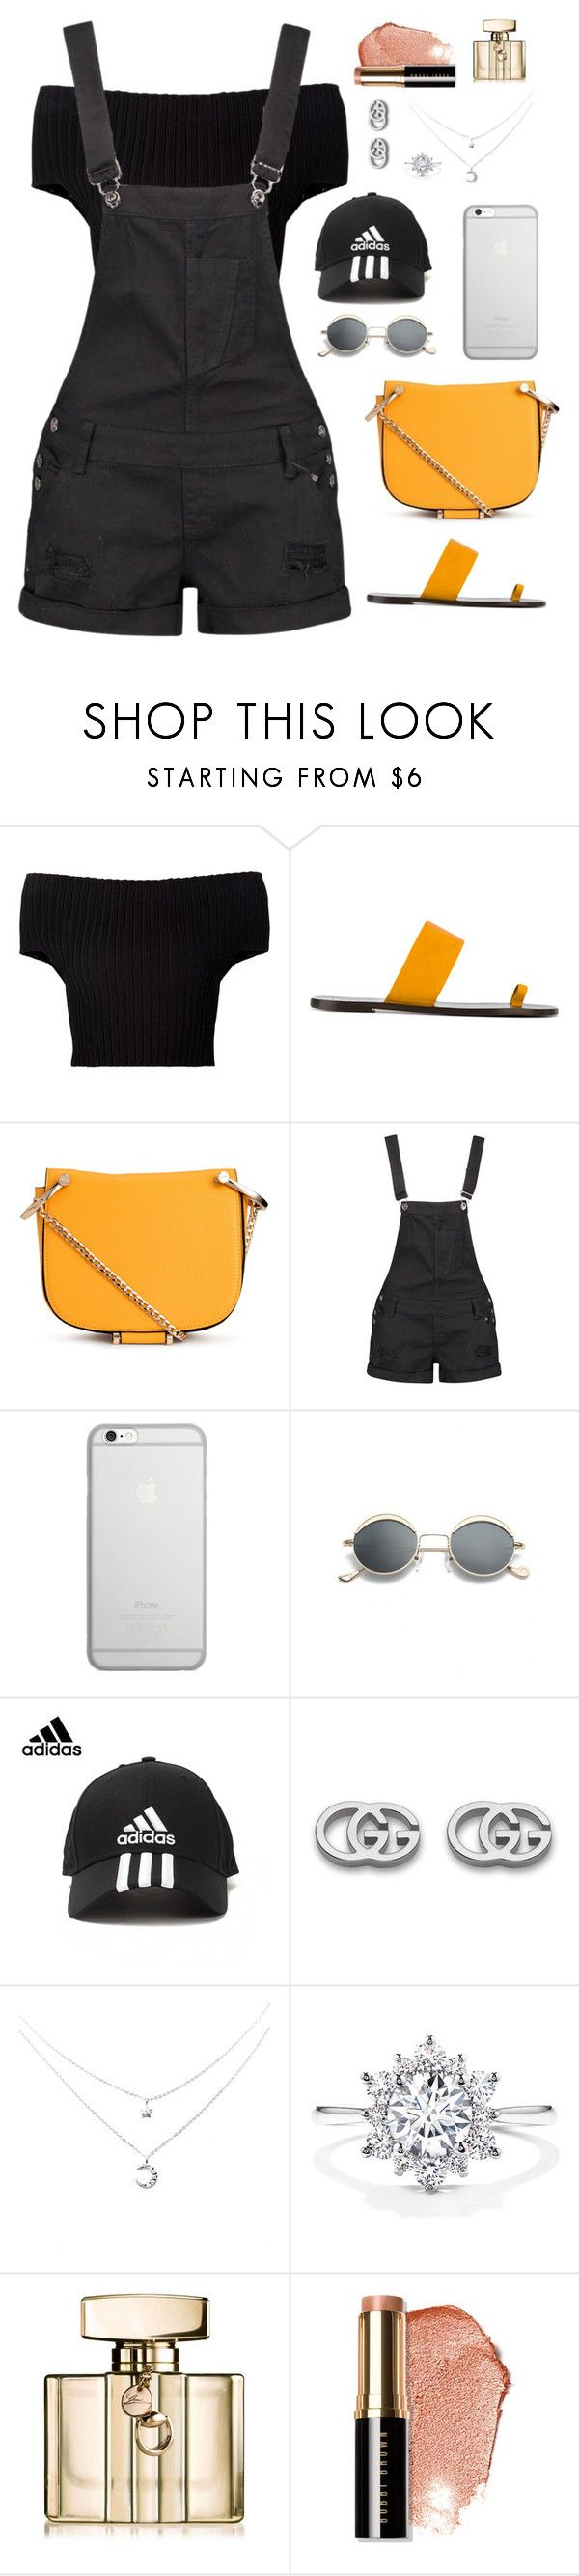 """""""Untitled #1948"""" by r-redstall ❤ liked on Polyvore featuring Calvin Klein Collection, All Tomorrow's Parties, Boohoo, Native Union, adidas, Gucci and Bobbi Brown Cosmetics"""